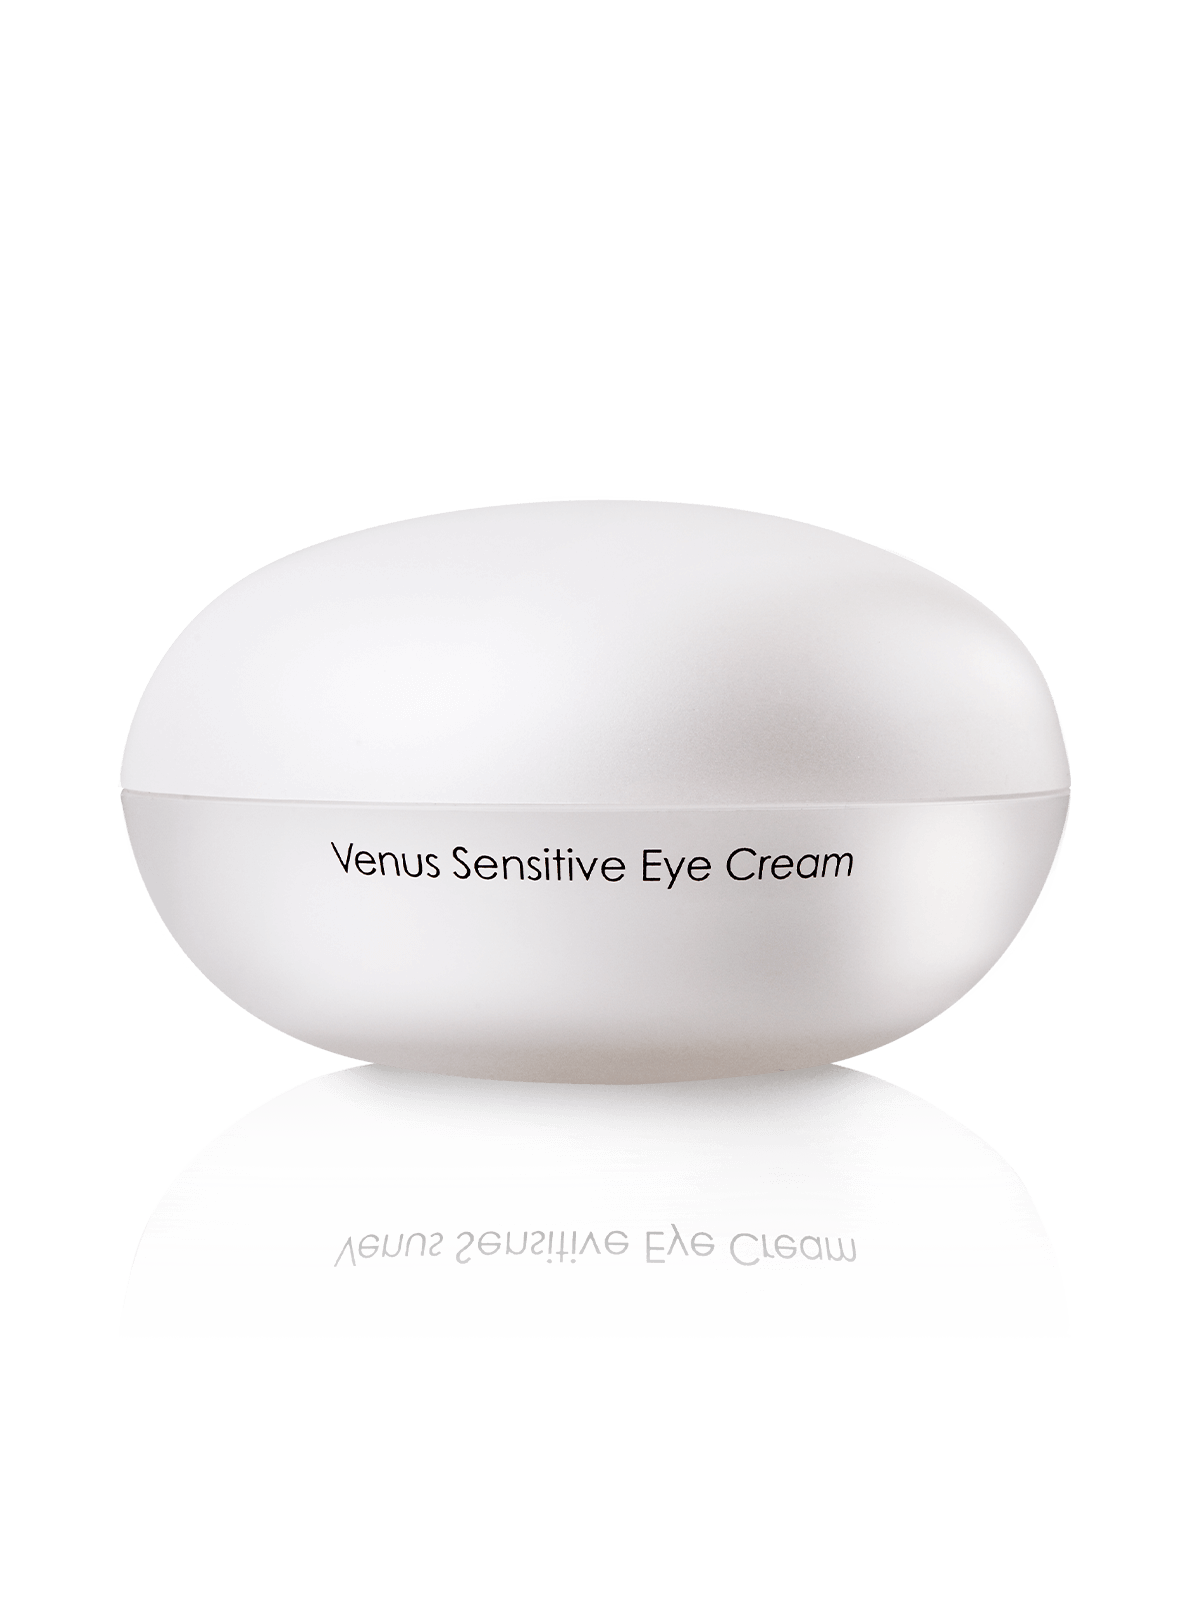 Venus Sensitive Eye Cream back